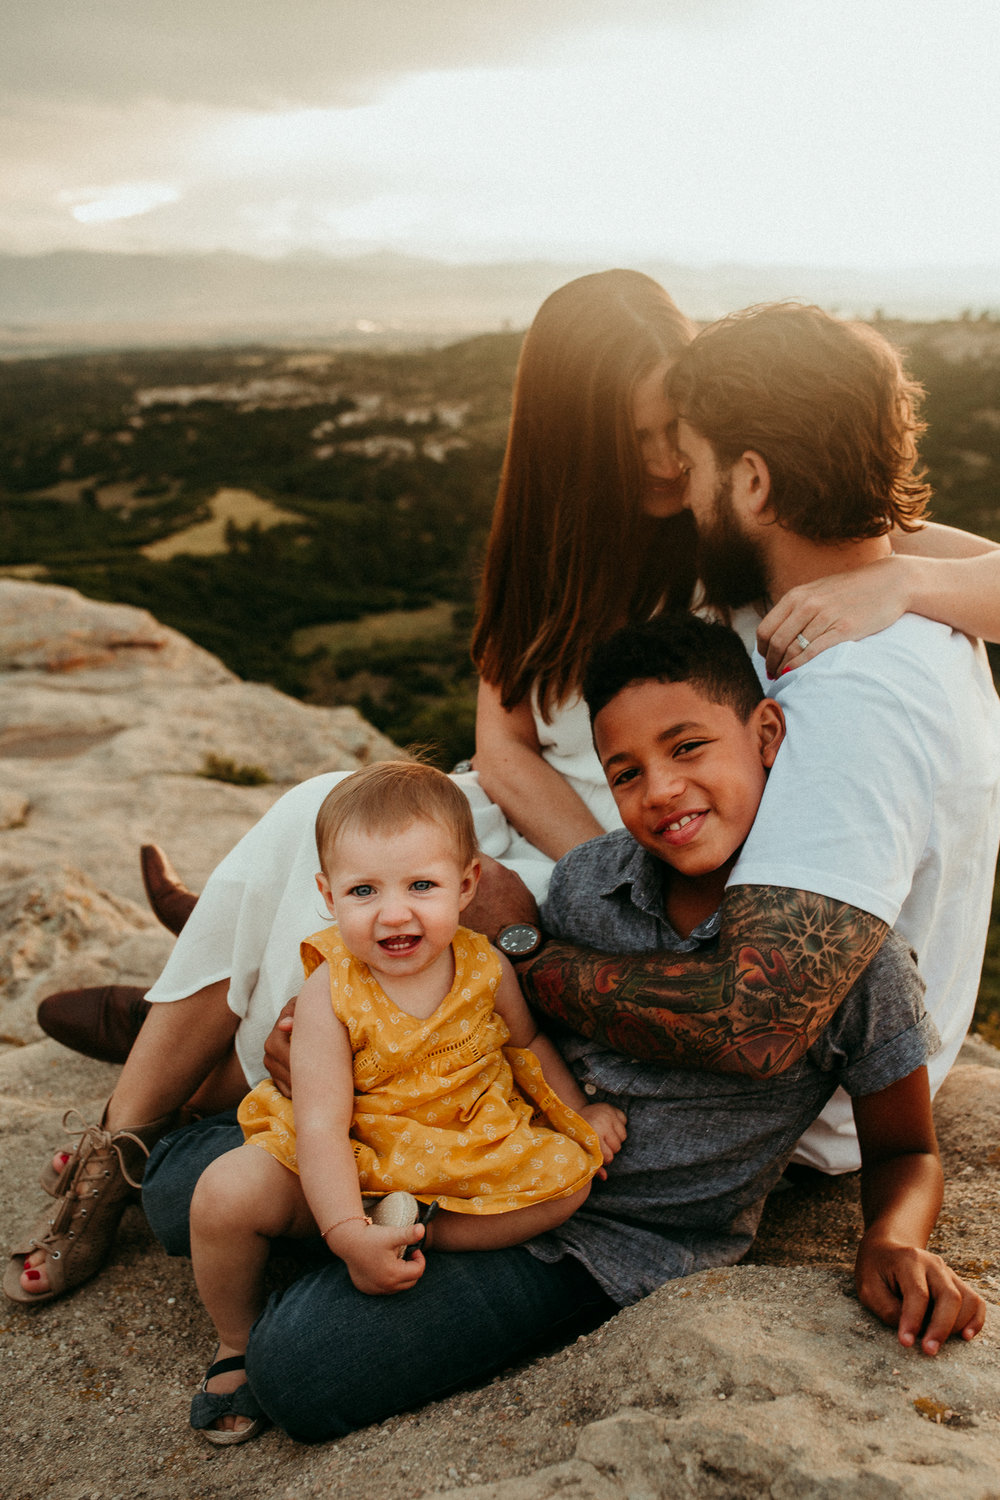 Daniels-Park-Denver-Colorado-Family-Photographer (6 of 20).jpg